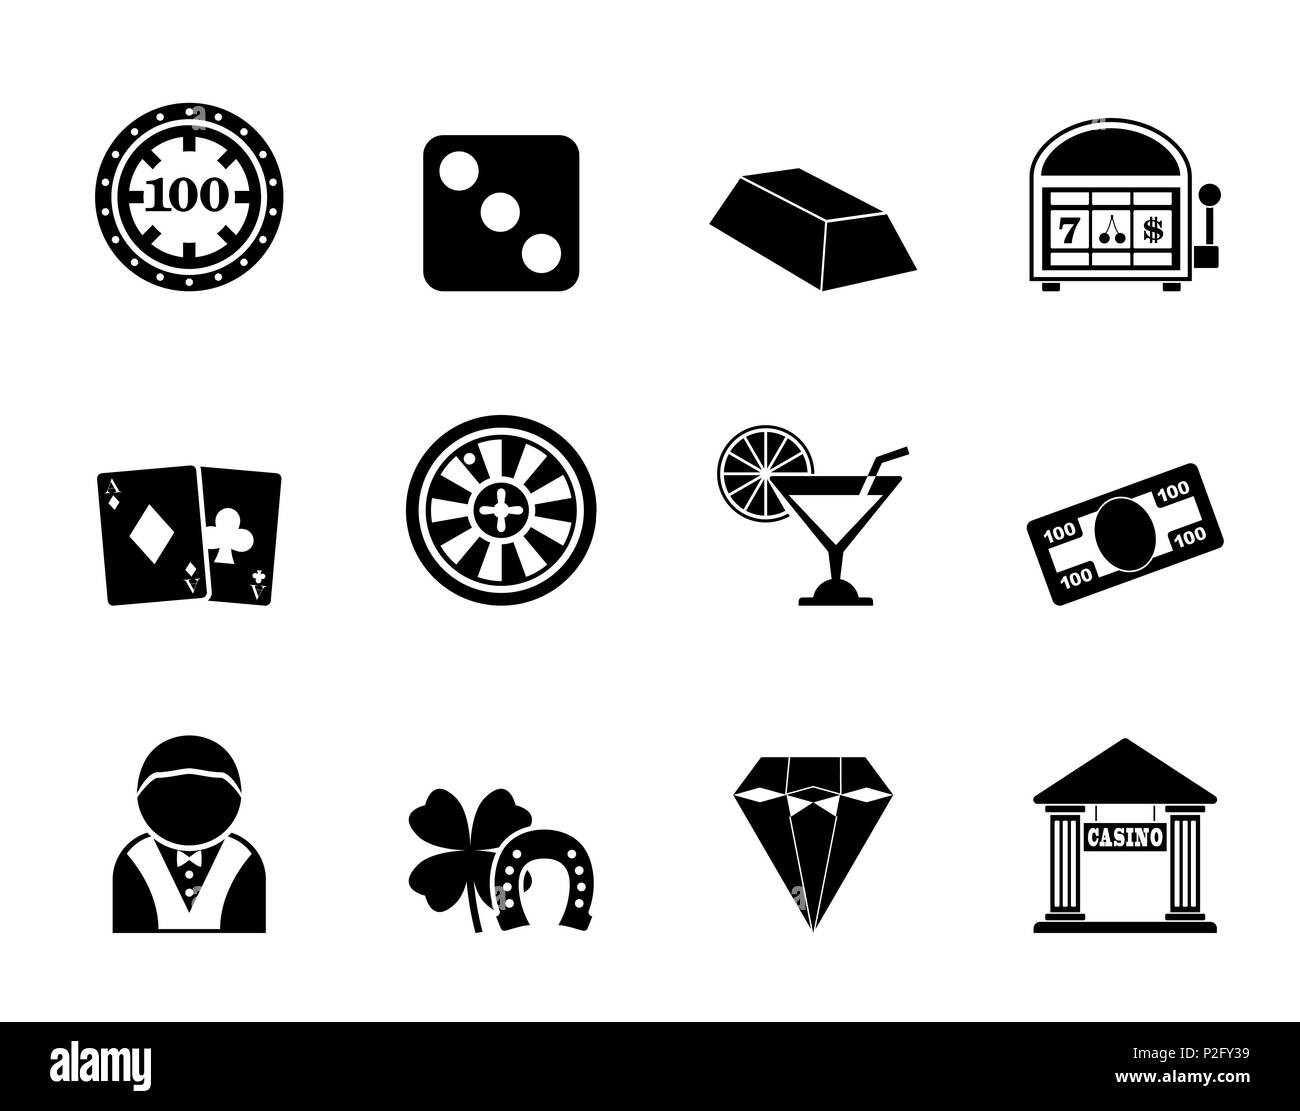 Silhouette casino and gambling icons - vector icon set - Stock Image